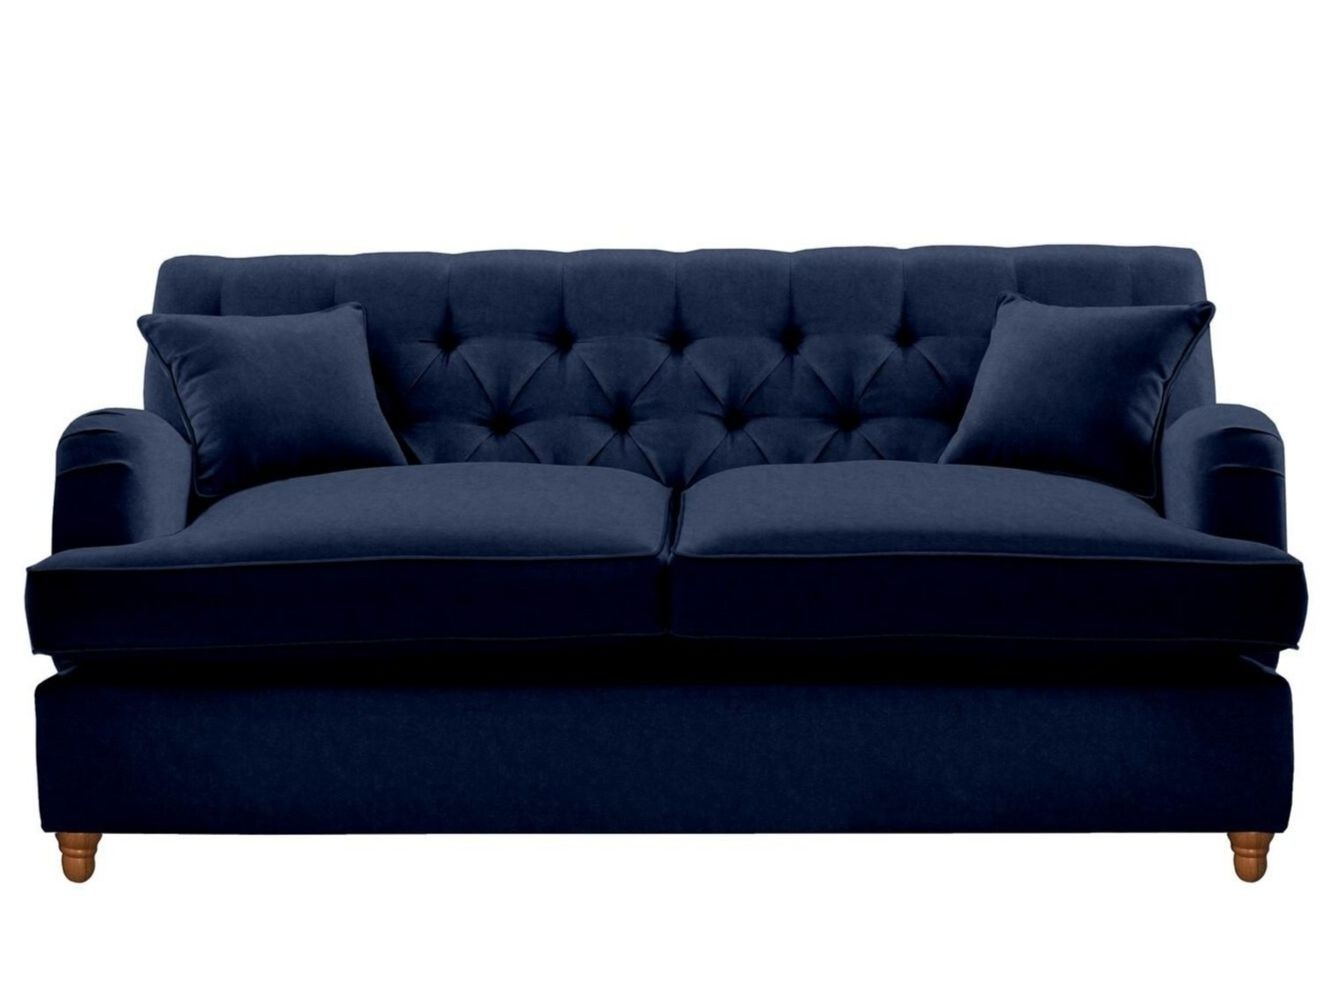 This is how I look in Cotton Velvet Admiral with siliconized hollow fibre seat cushions